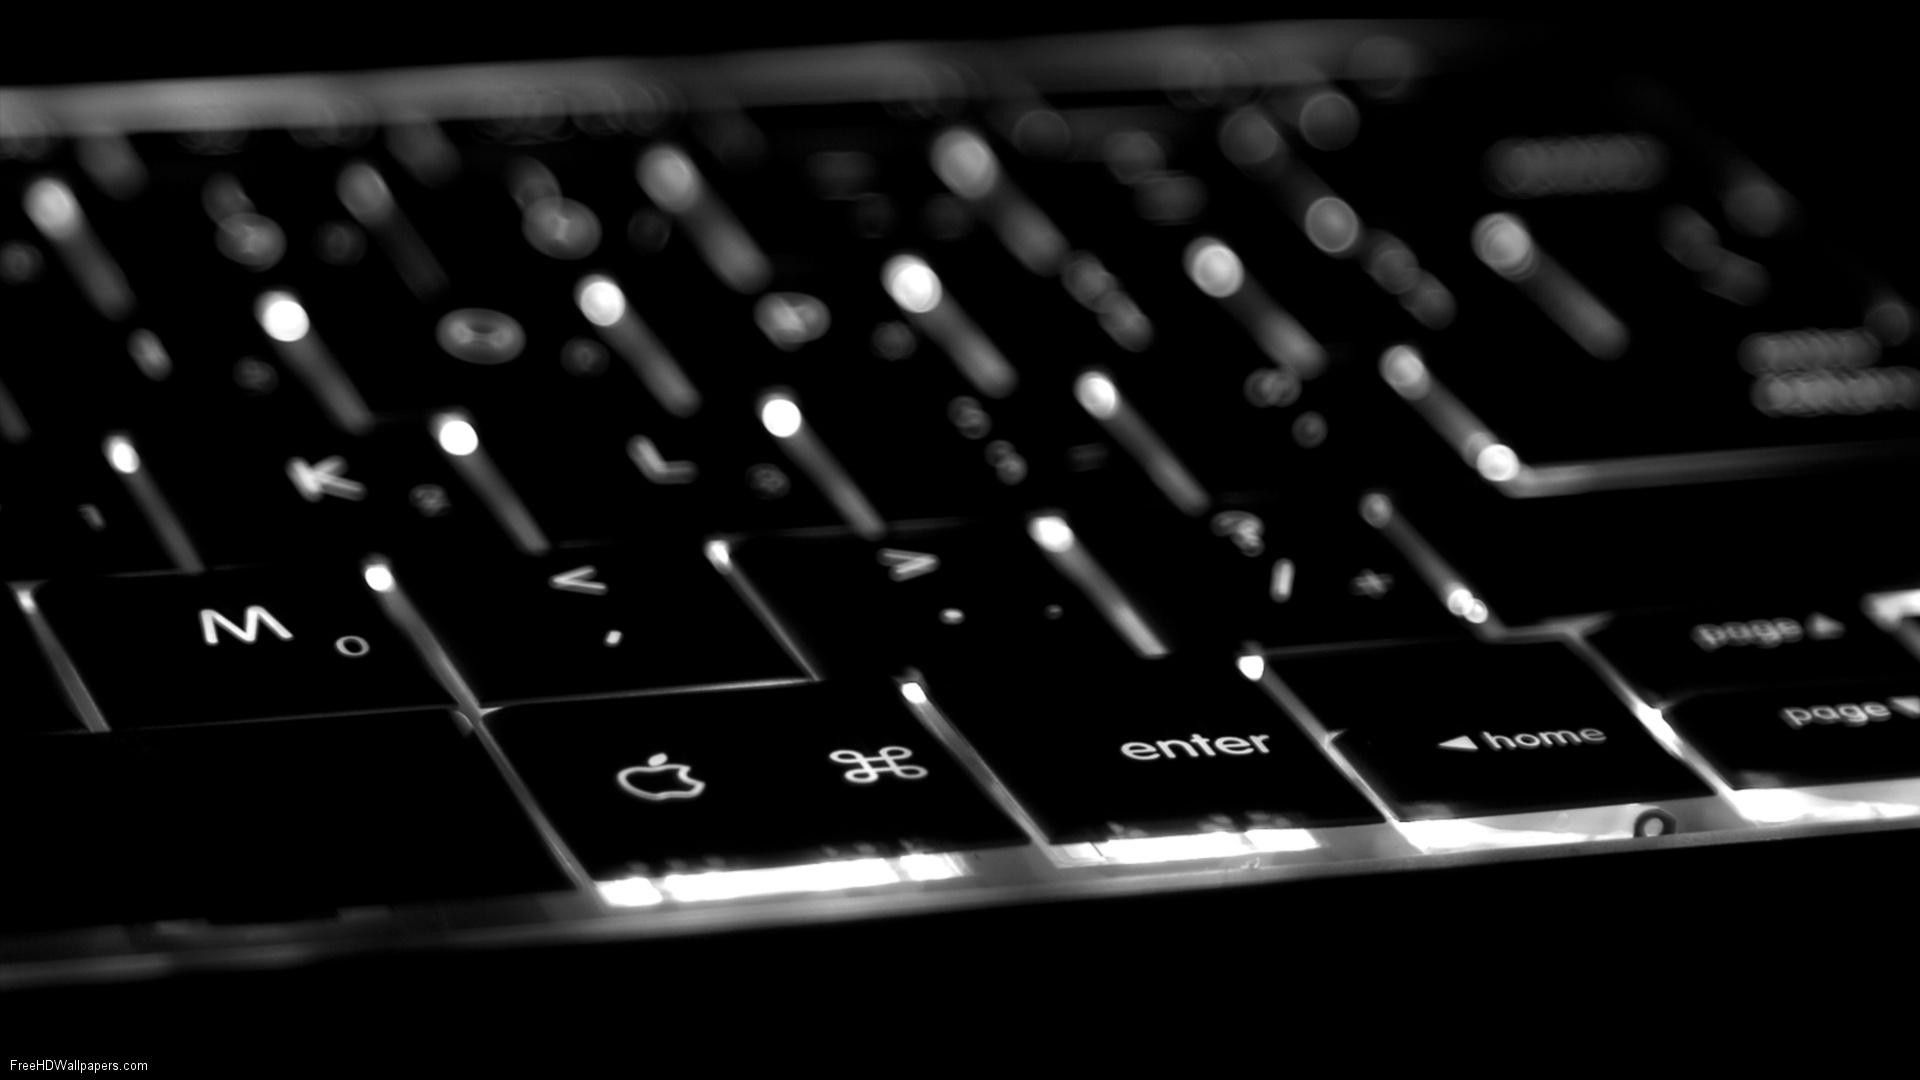 Res 1920x1080 Cool Computer Keyboards Wallpaper Computer Keyboard Keyboard Hi Tech Wallpaper